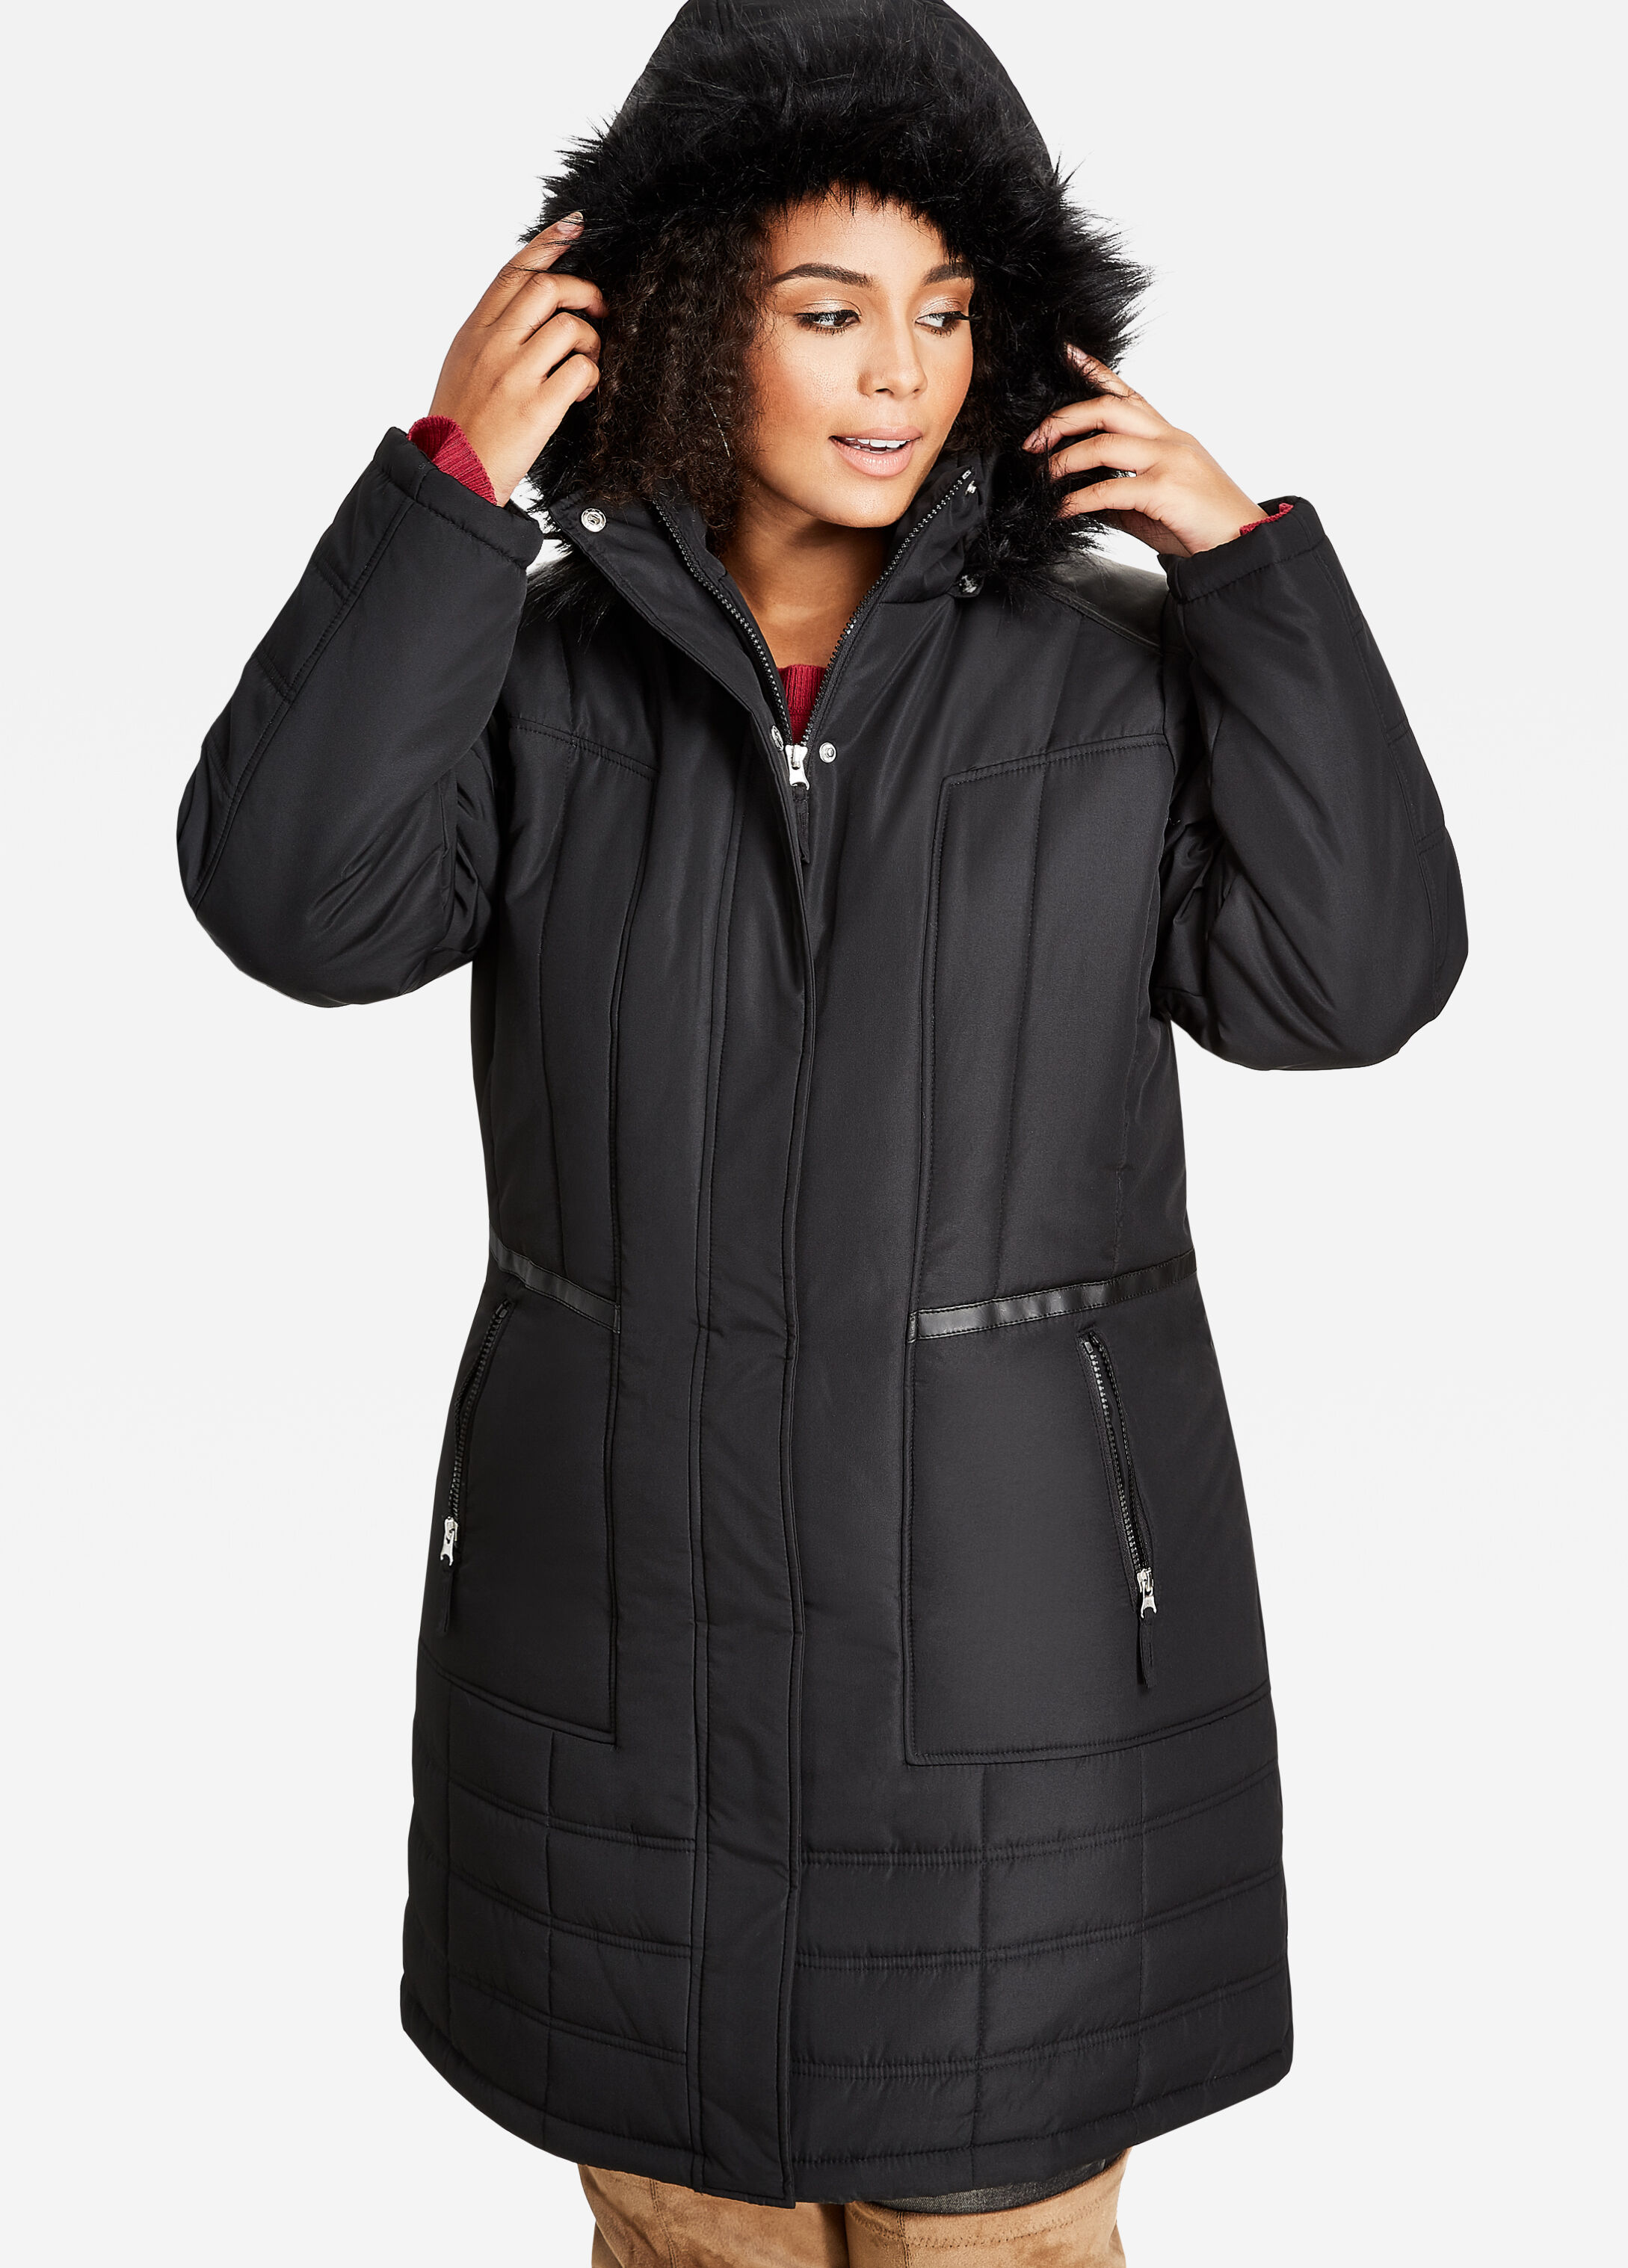 Long Puffer Jacket with Faux Leather Trim